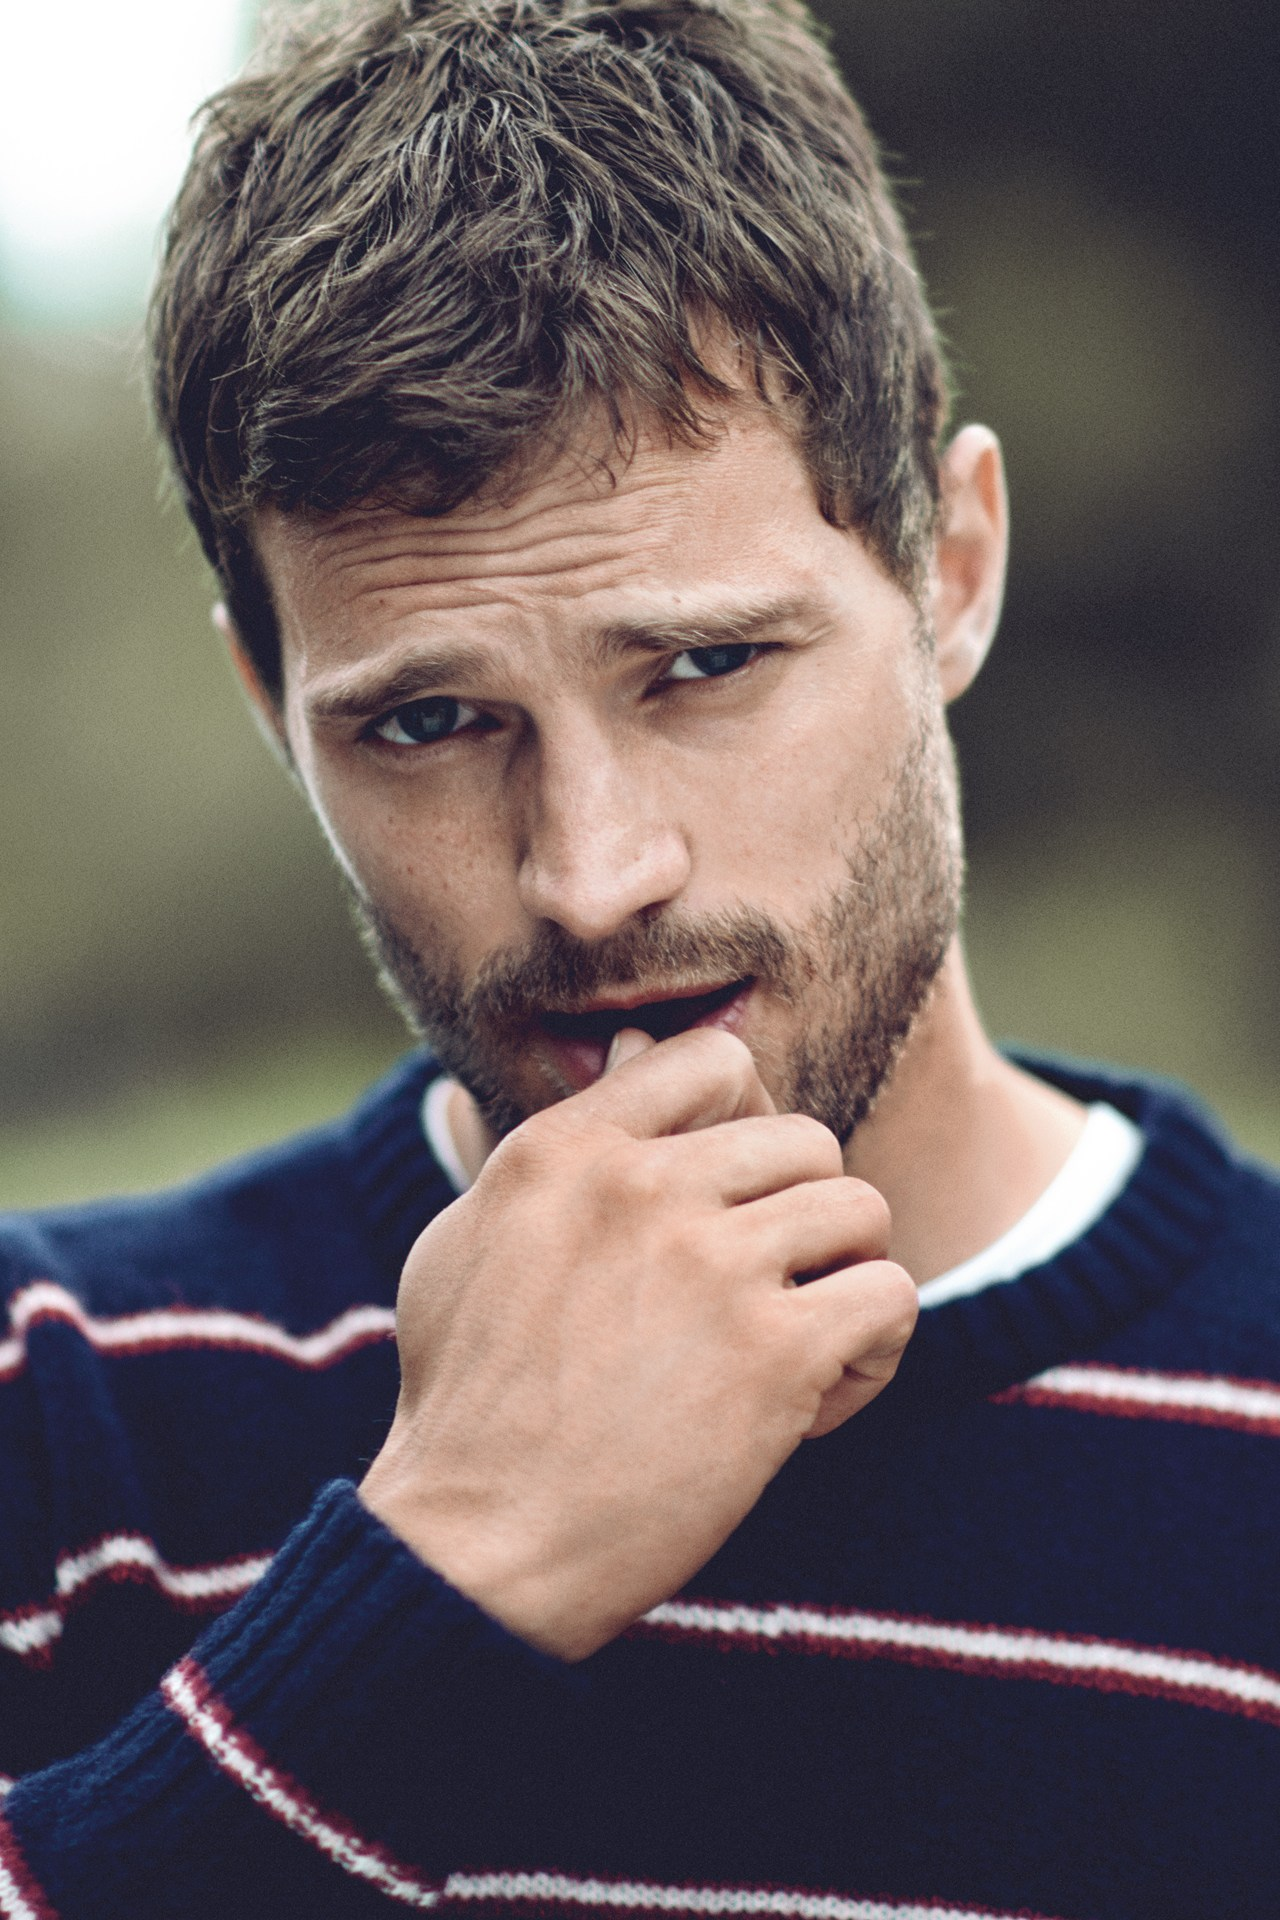 jamie-dornan-2-vogue-2014-november-12feb15-boo-george